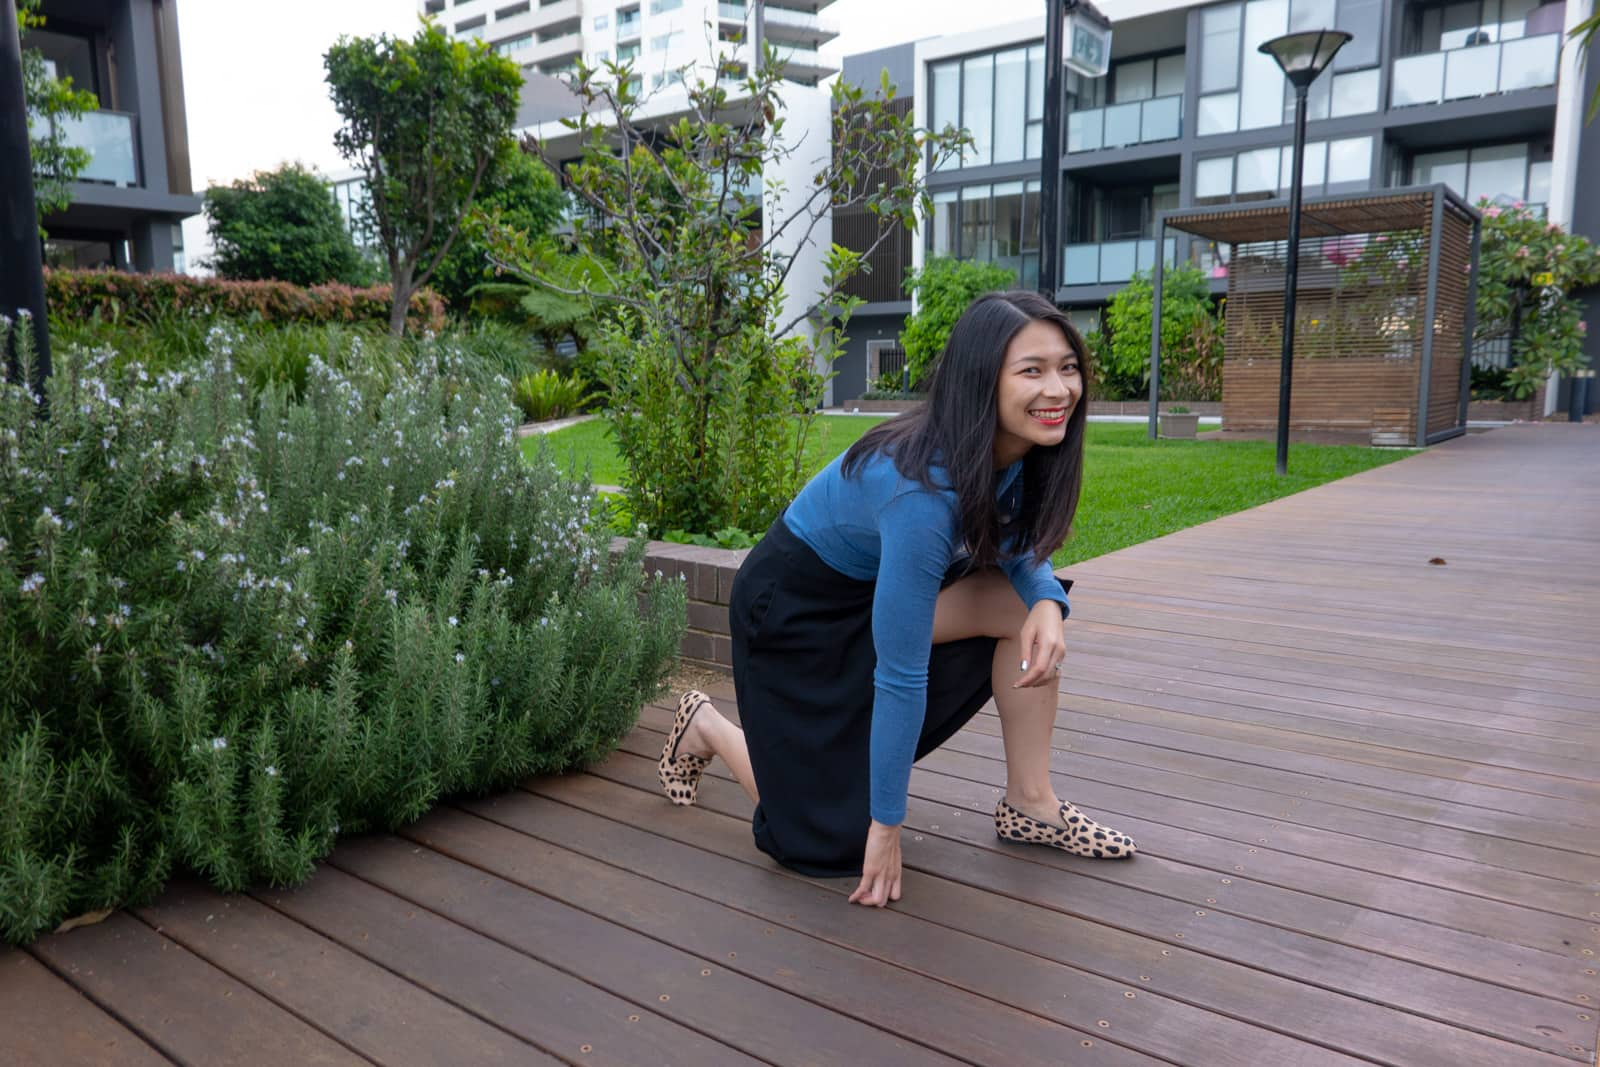 The same woman in other photos in this post, but posing on a wooden plank path with one knee on the ground and the other leg propped up. She is grinning, mid-laugh. In the background a cabana and a block of apartments can be seen